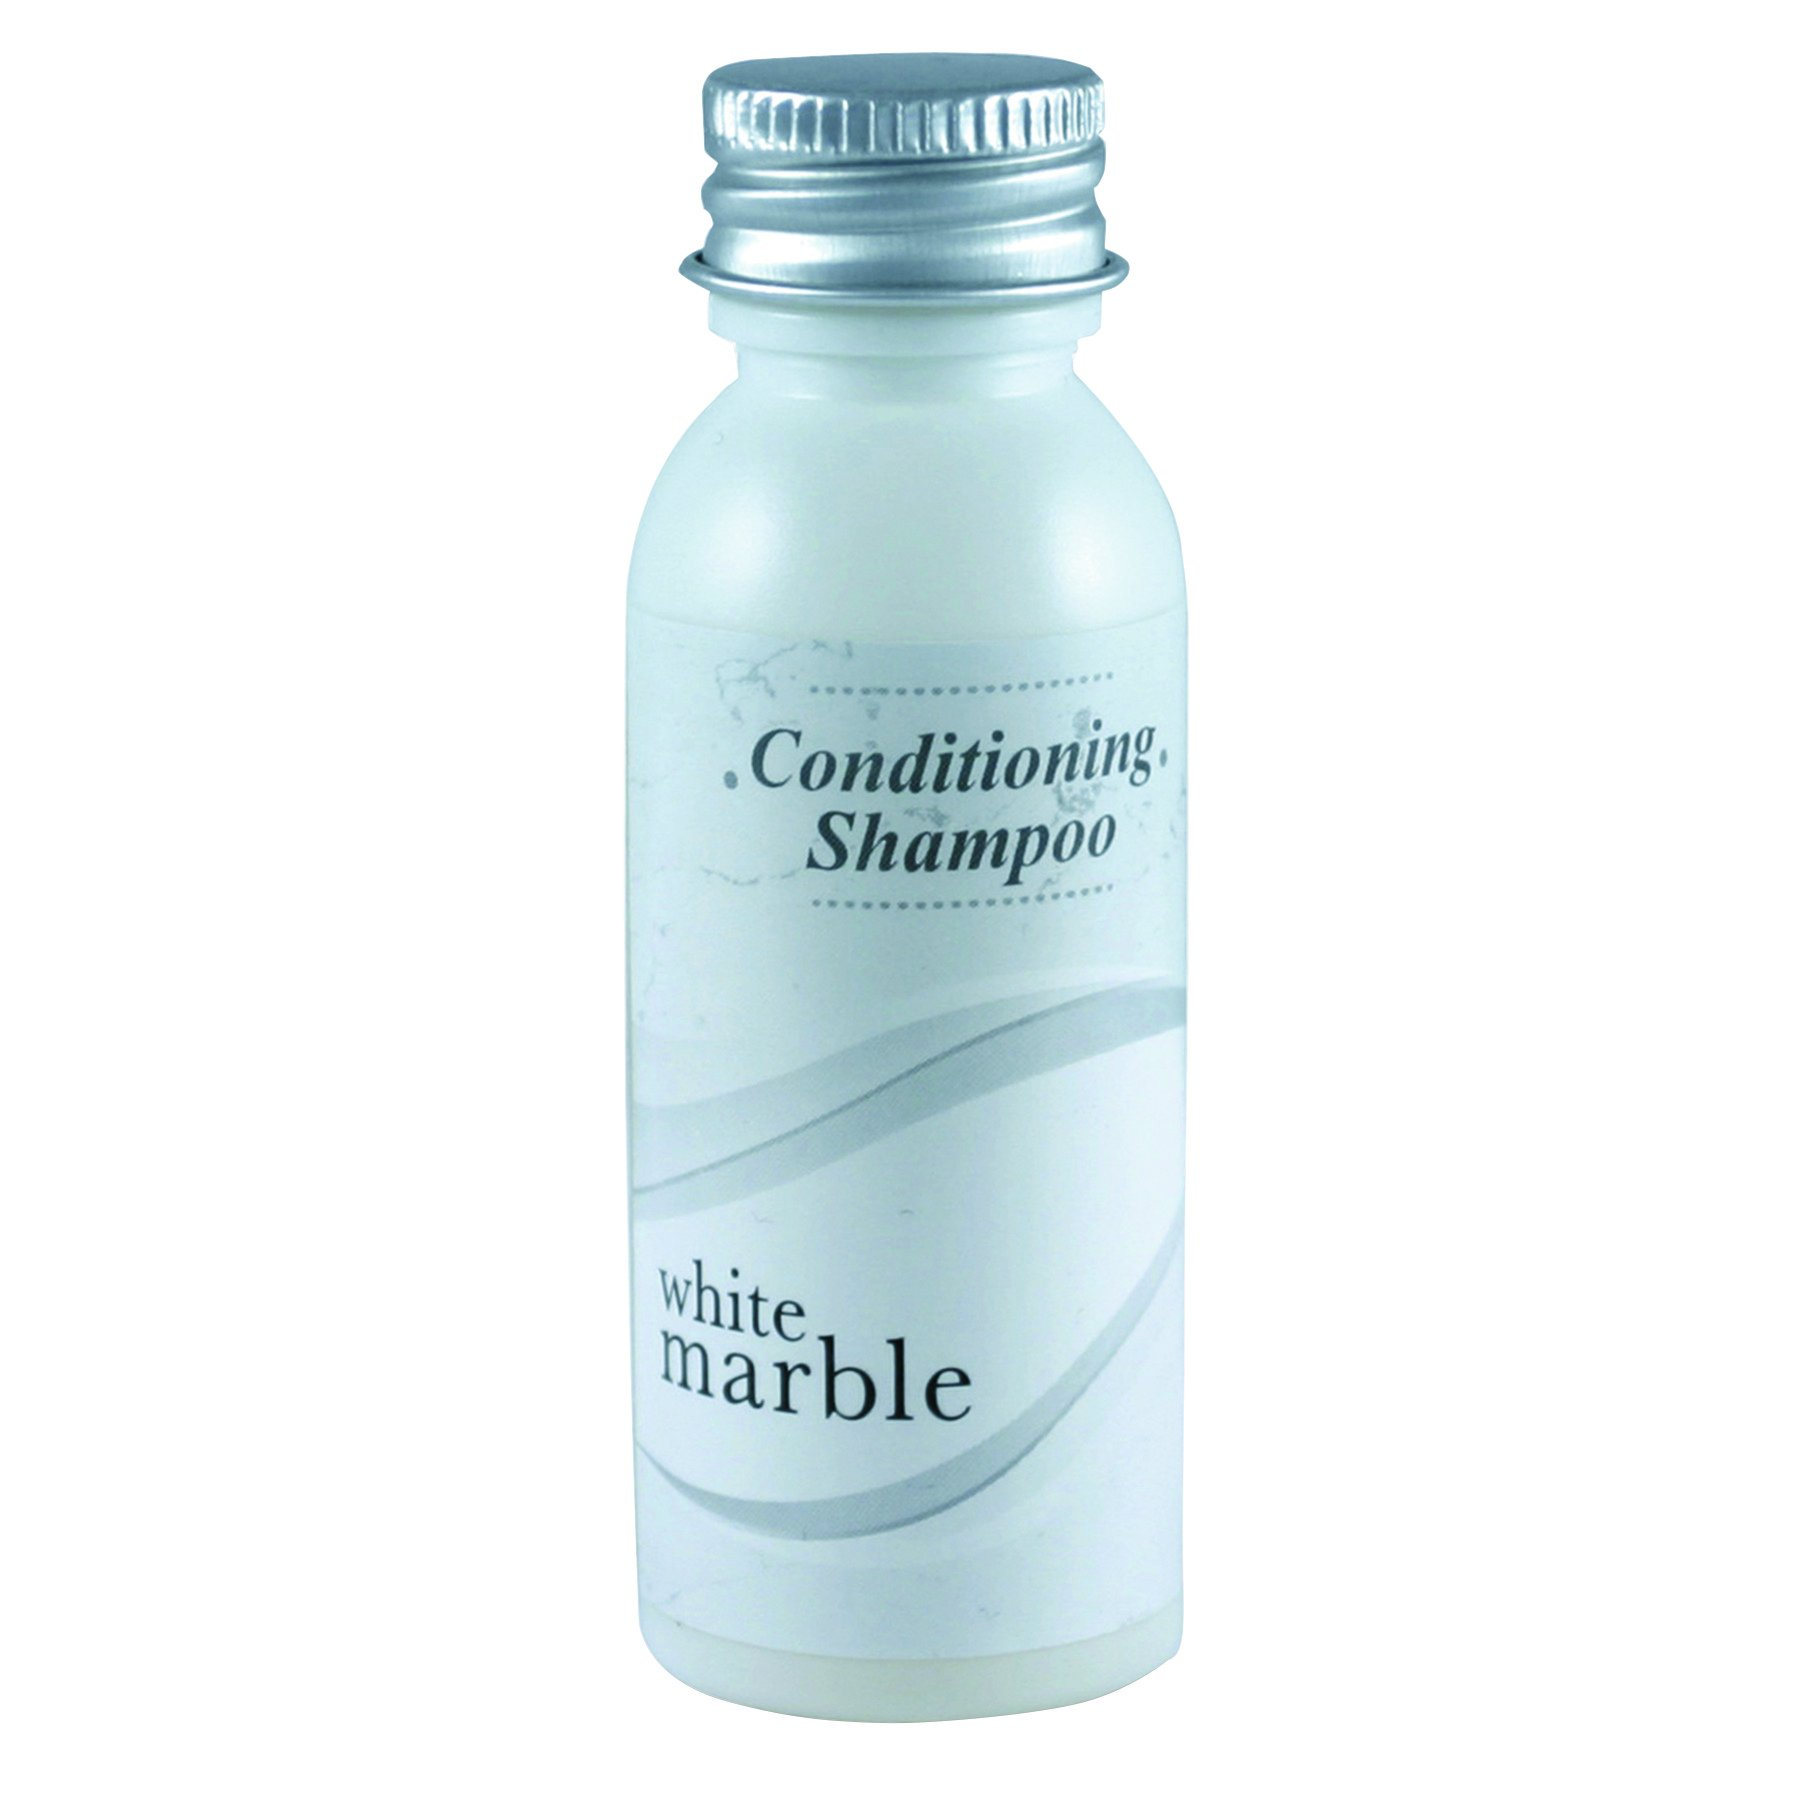 Dial Amenities 1319071 Breck Conditioning Shampoo , 0.75 oz Bottle (Case of 288)